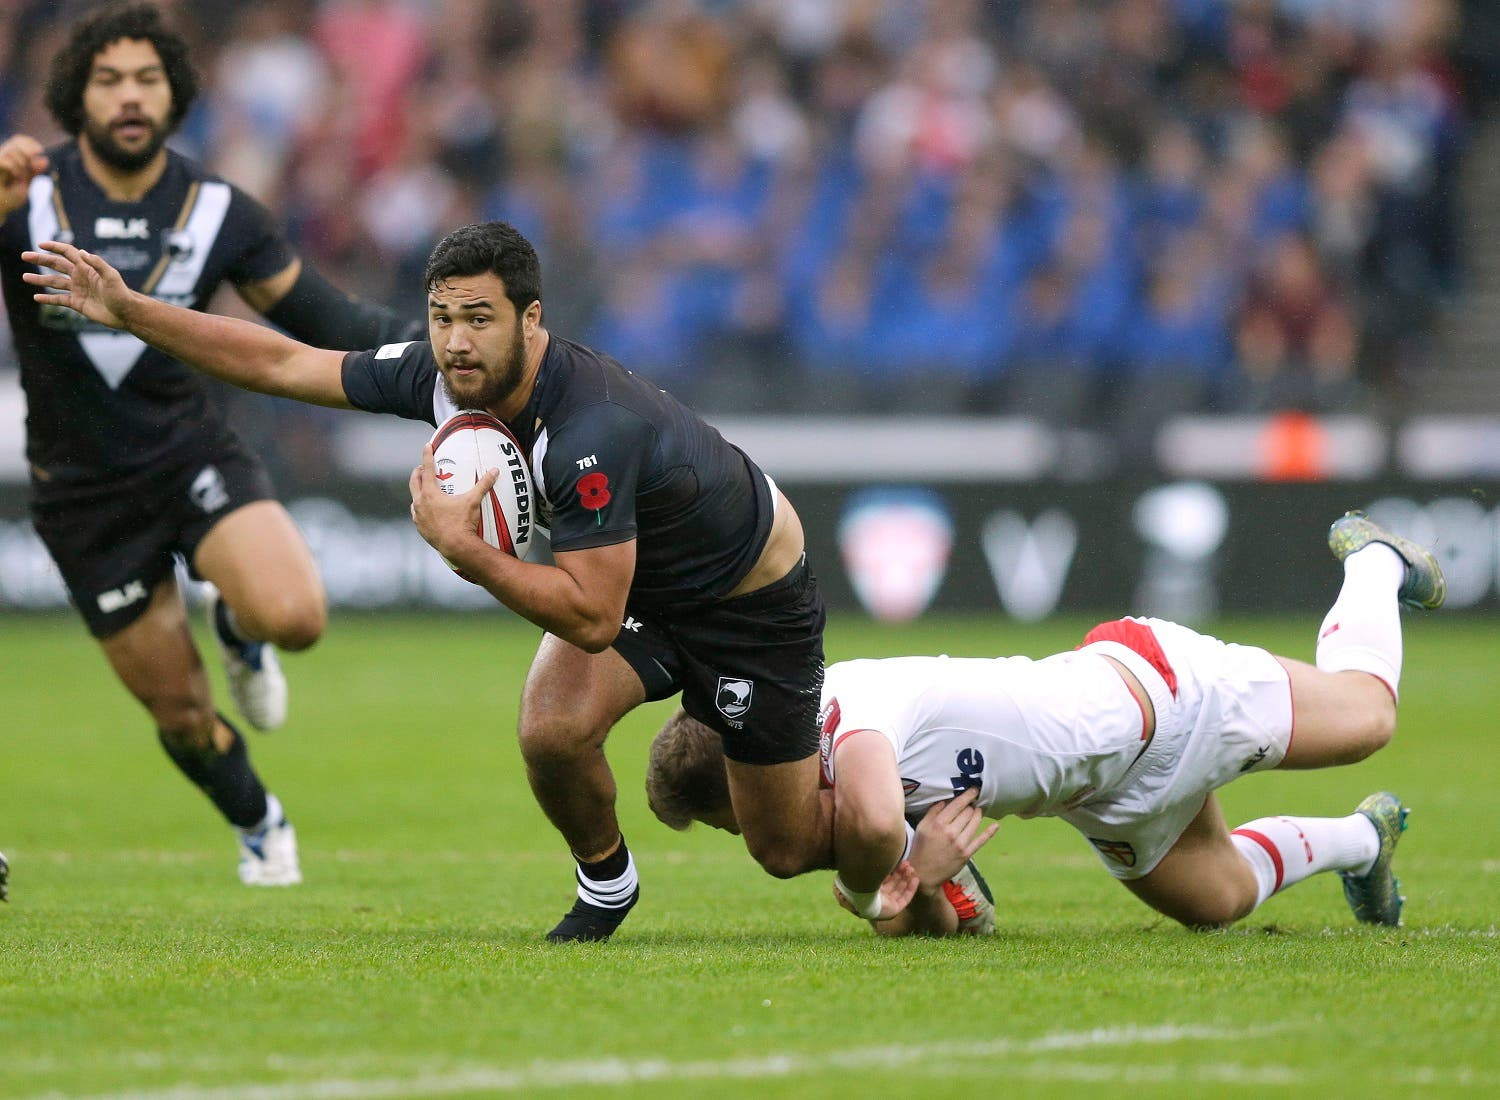 New Zealand's Pete Hiku is tackled by England's George Williams. (Reuters)